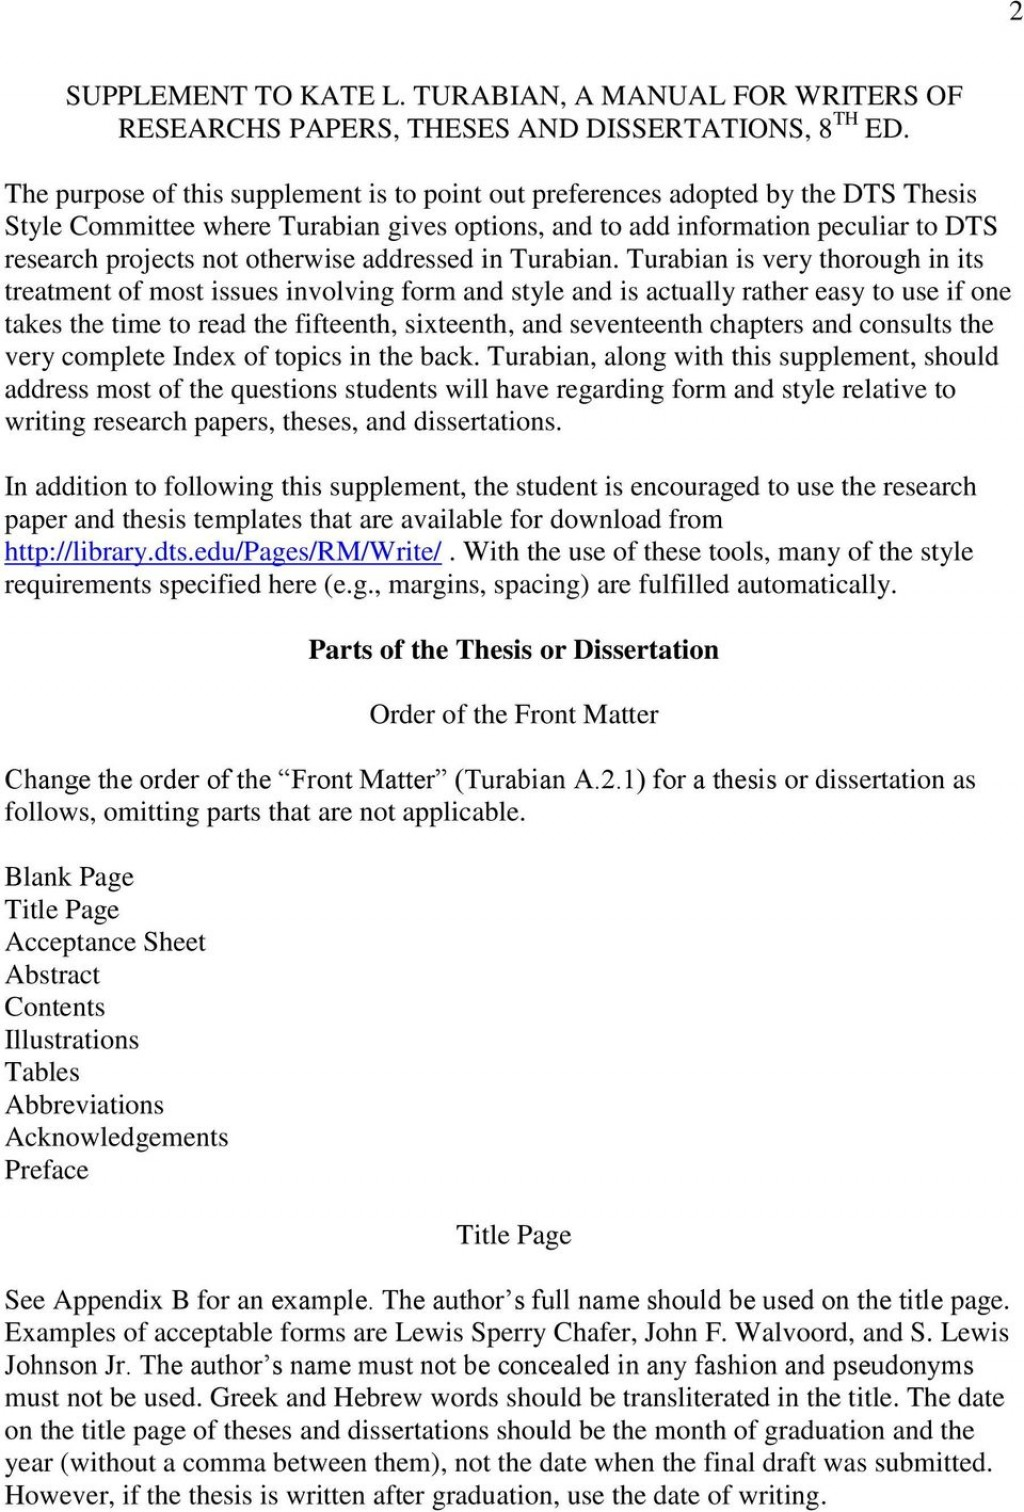 020 Research Paper Page 2 Manual For Writers Of Papers Theses And Dissertations 8th Staggering A Edition Pdf Large